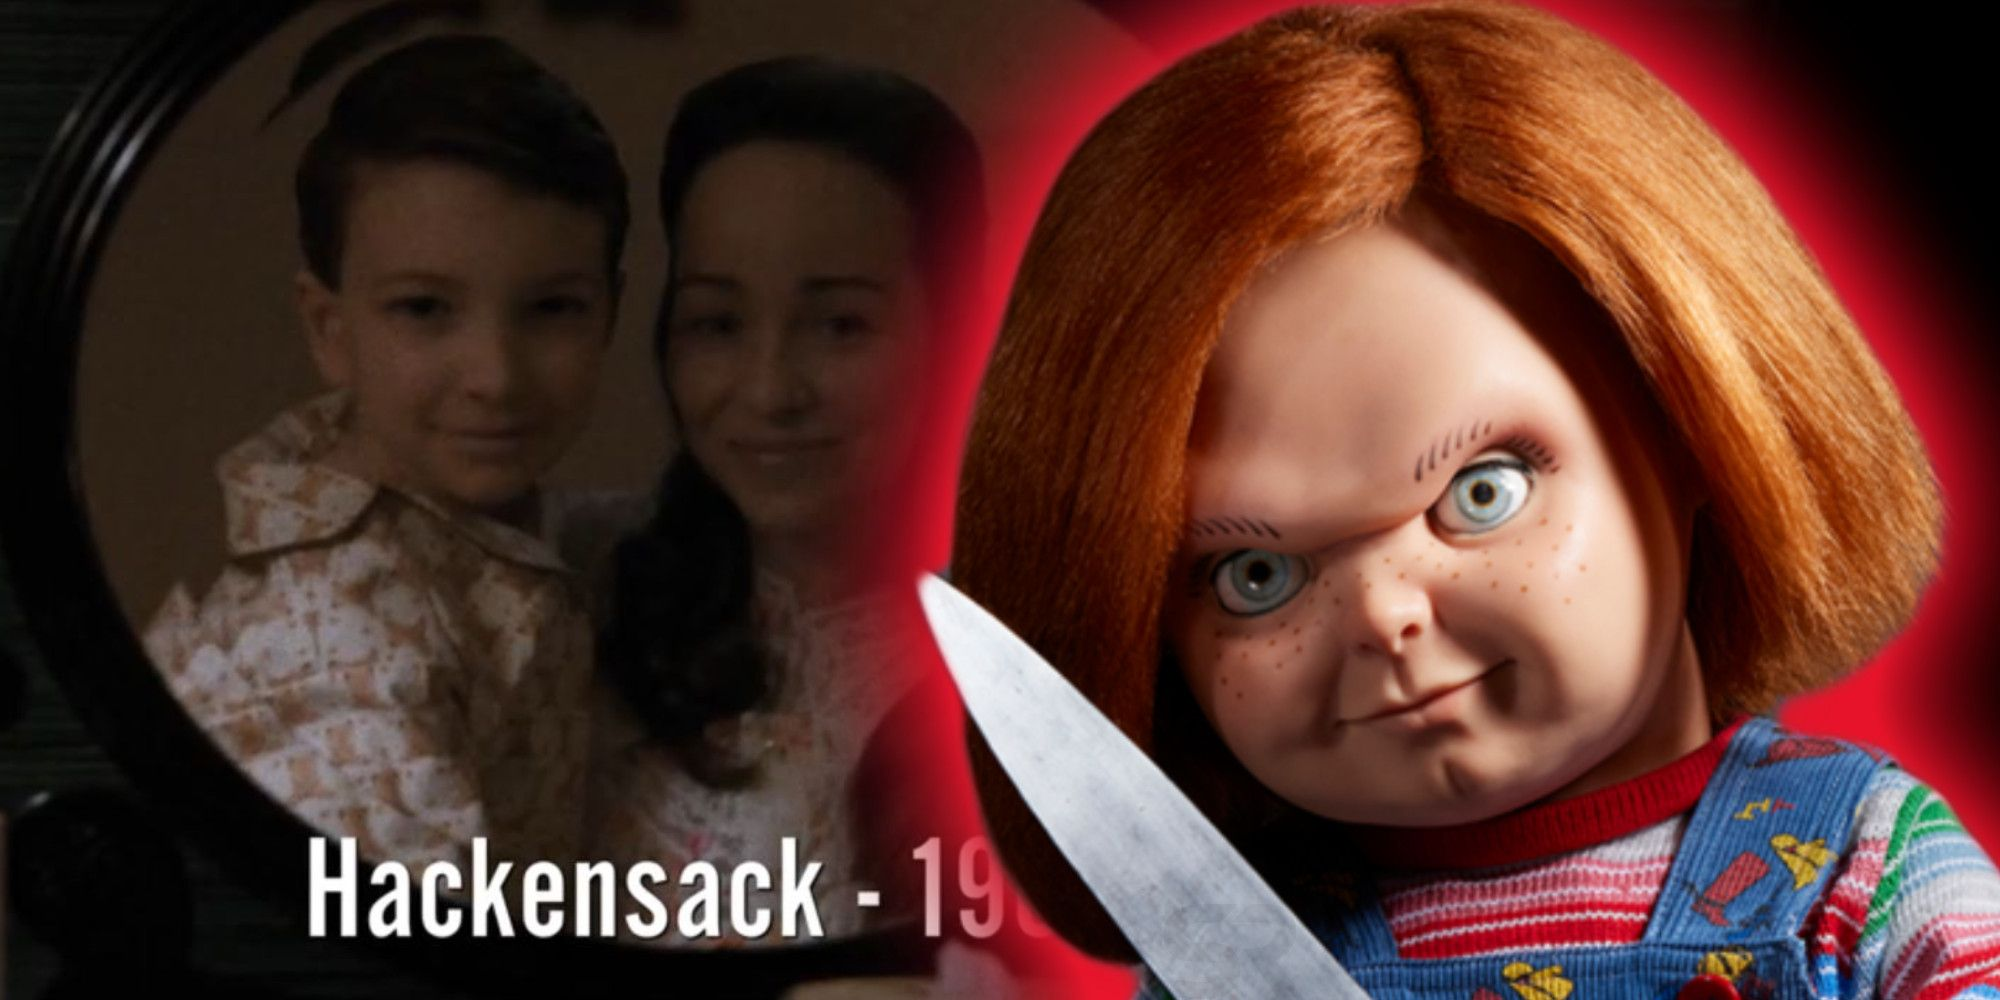 Why Chucky Chose To Target Hackensack, New Jersey